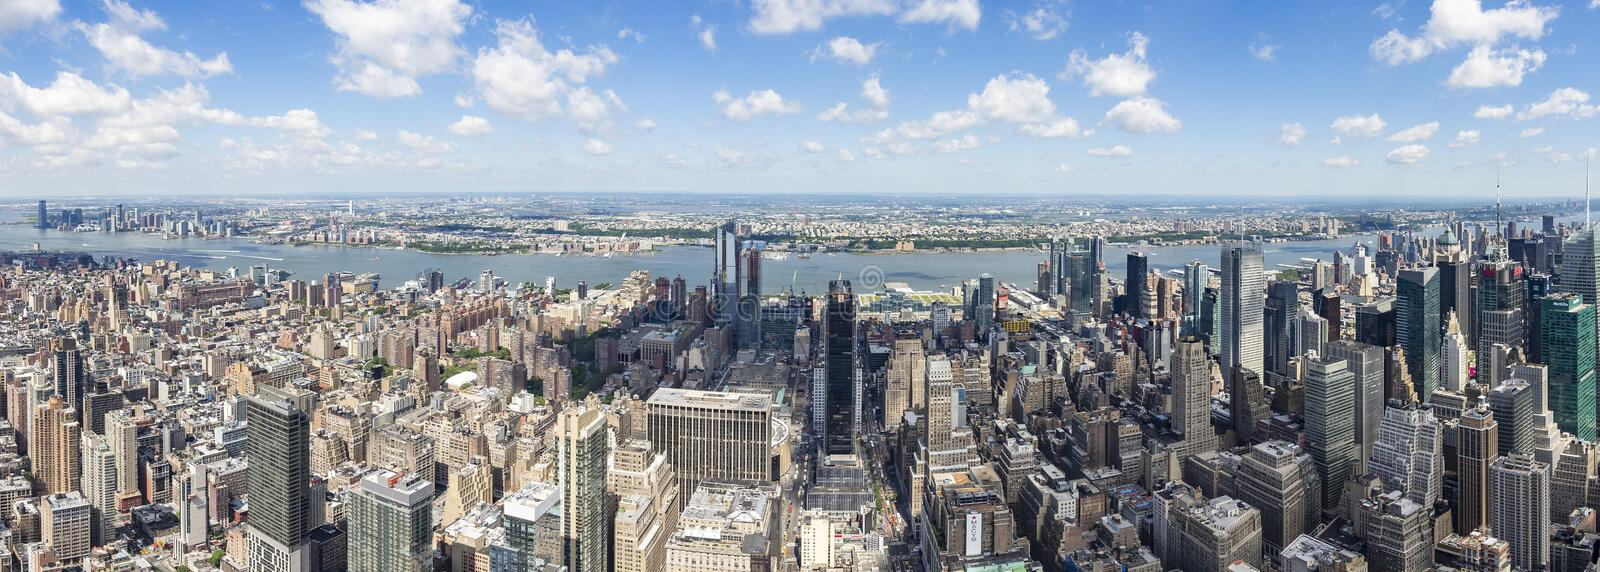 West panorama view from The Empire State Building with New Jersey and the Hudson river, New York, United States royalty free stock photos